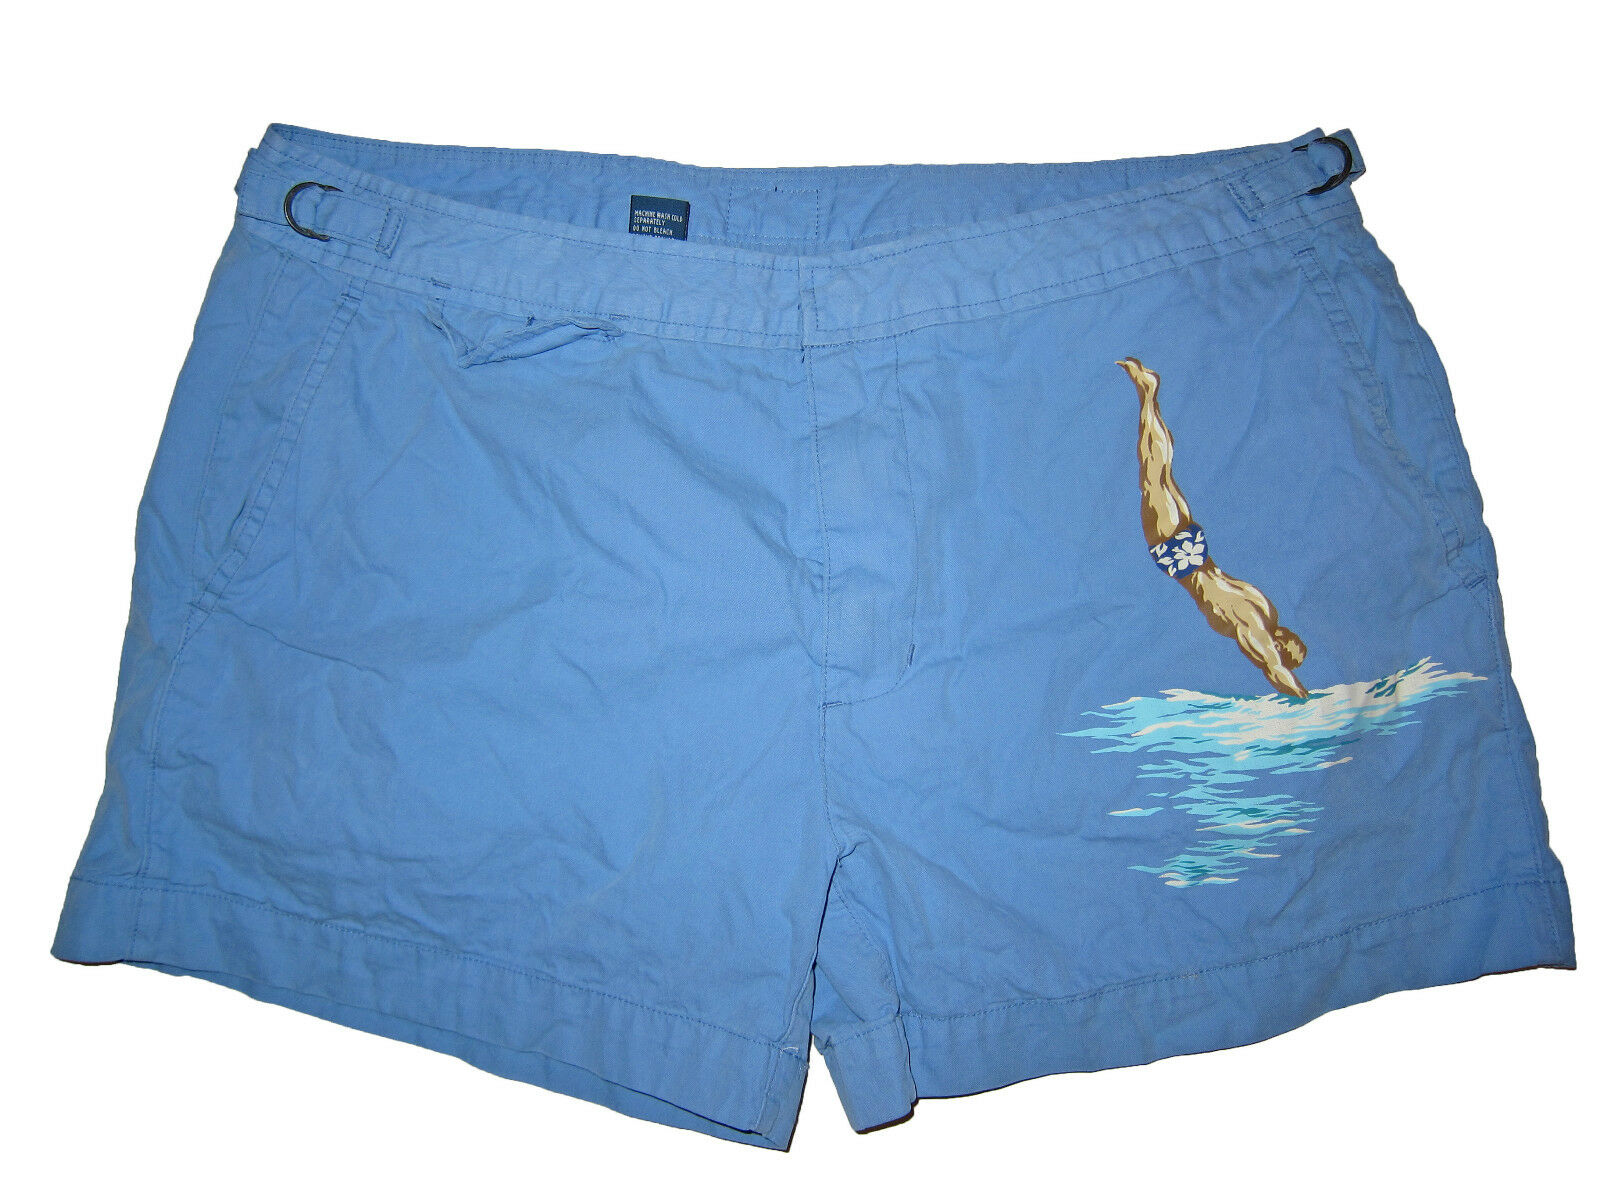 Polo Ralph Lauren bluee Key West Diving Beach Swim Surf Shorts Trunks 36